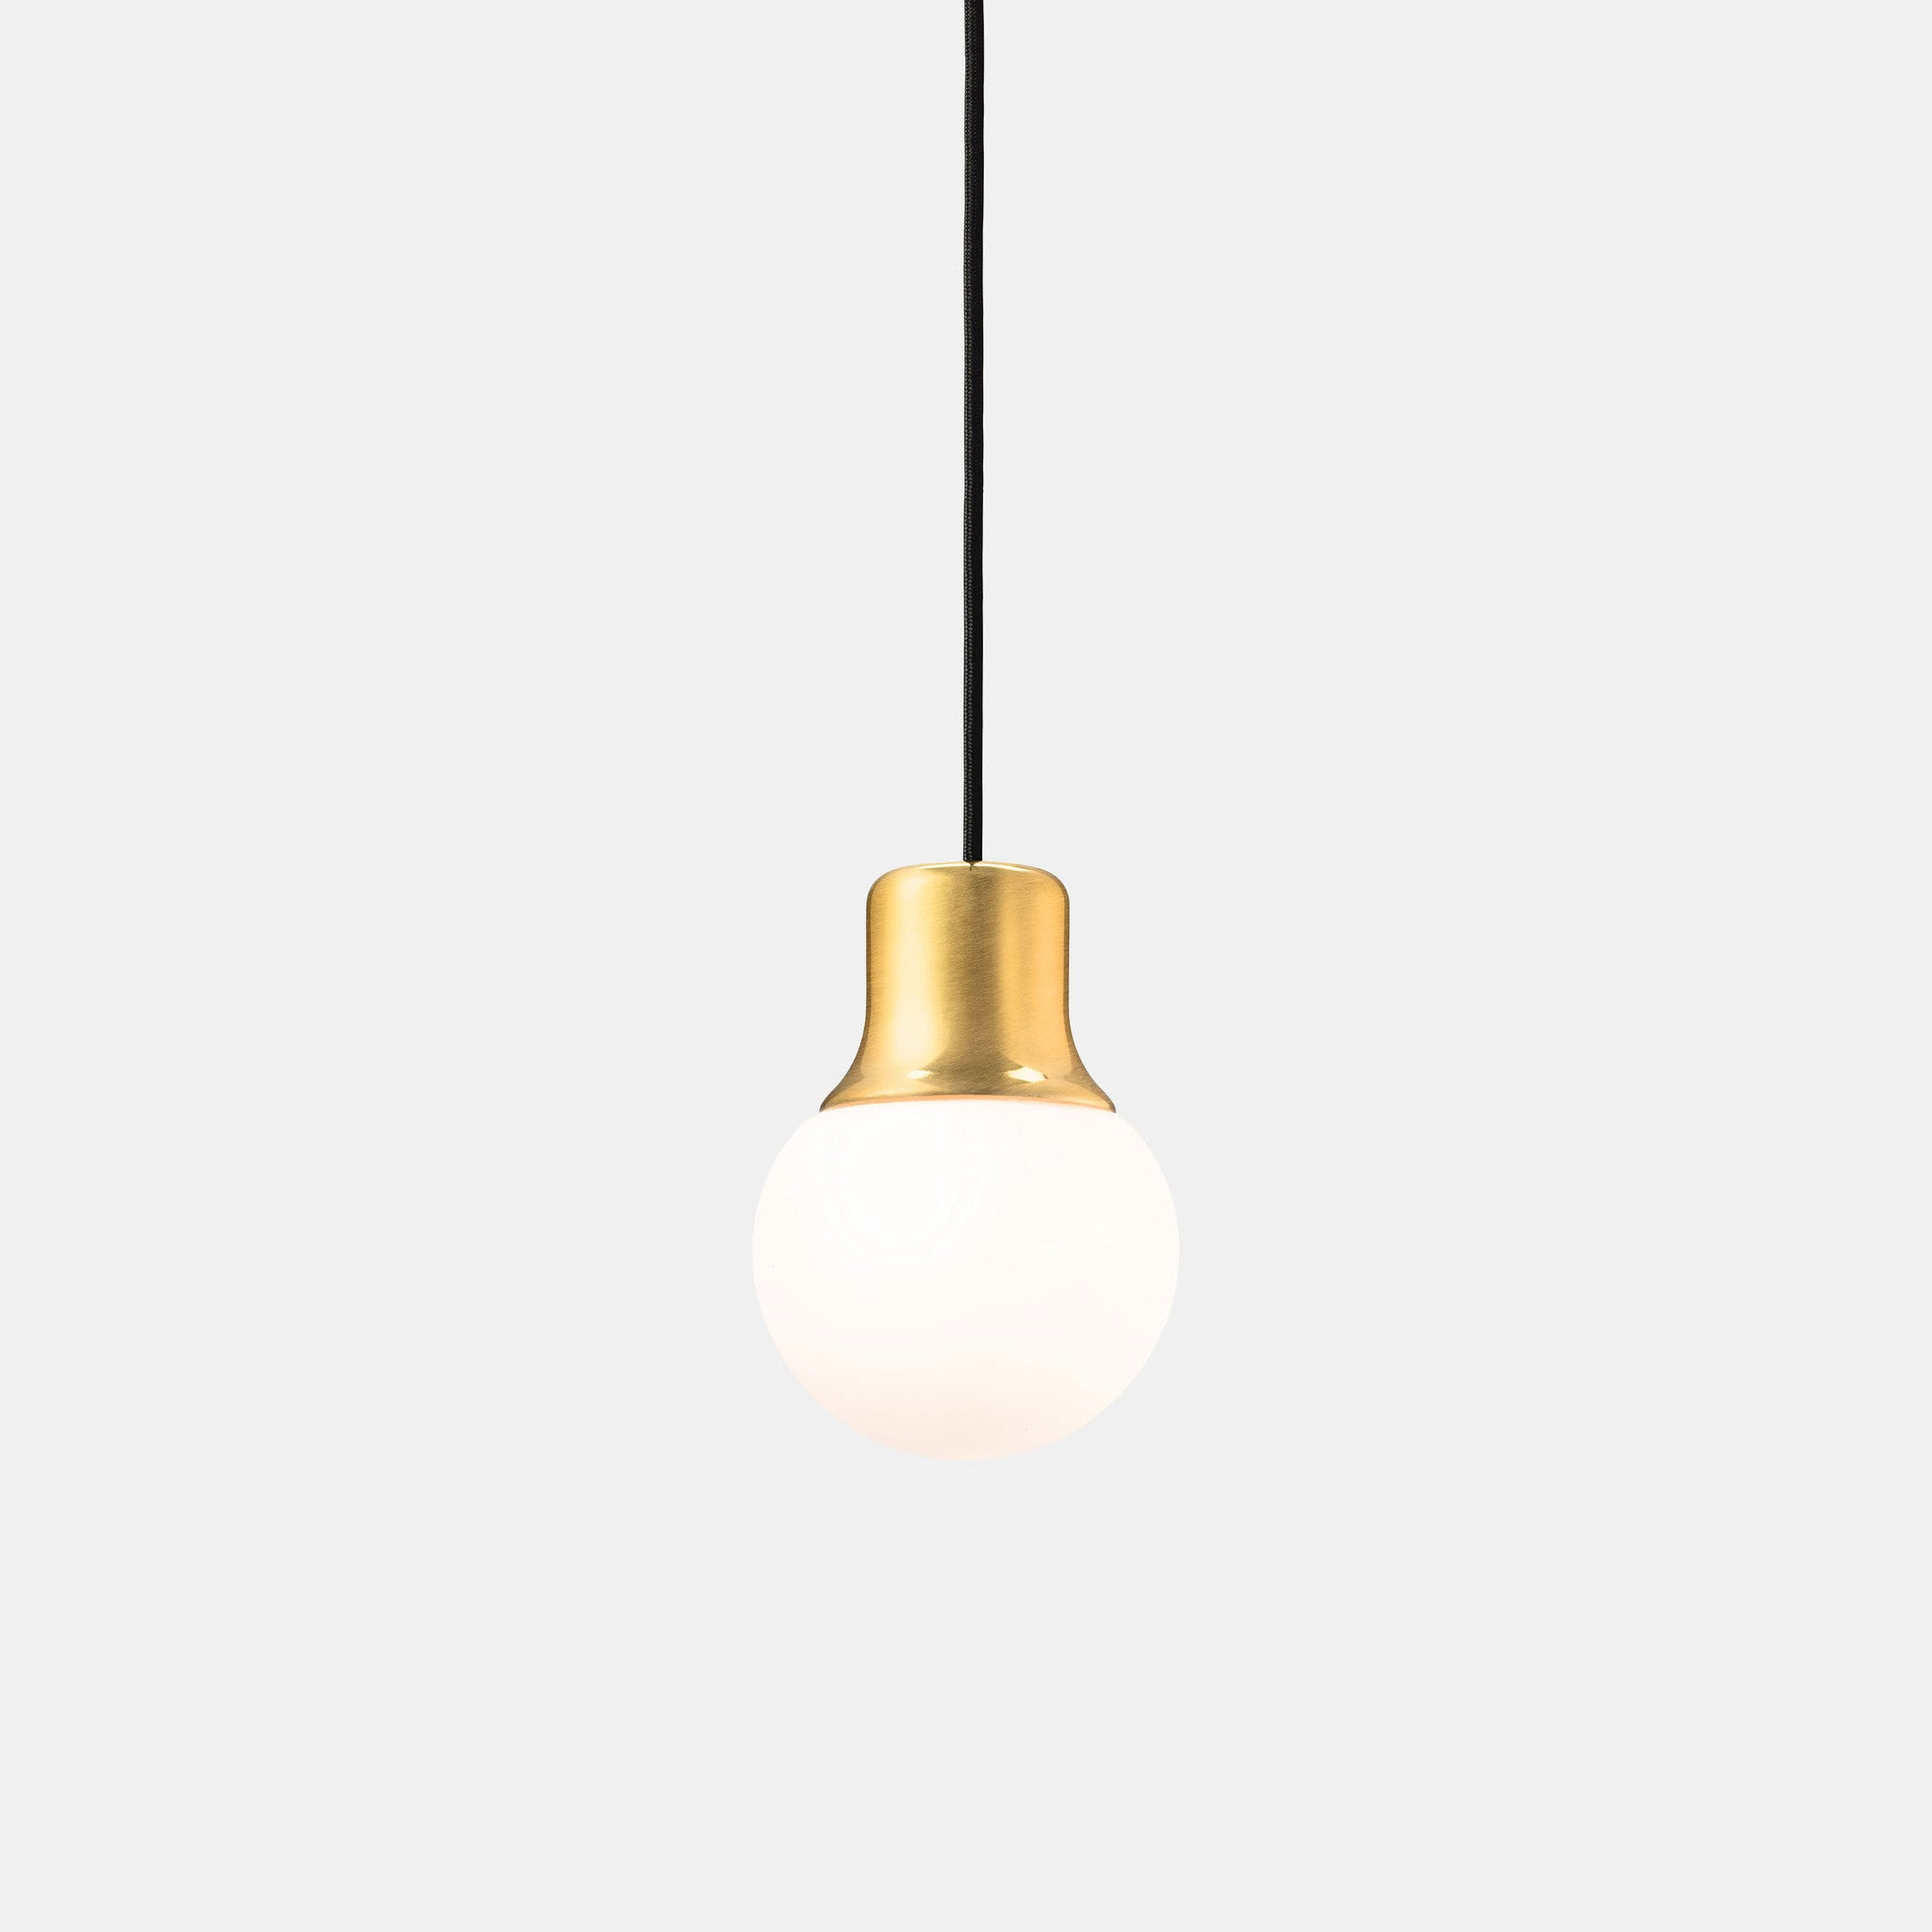 glass pendants jug shades light pendant curated oversized collection of our explore categories all